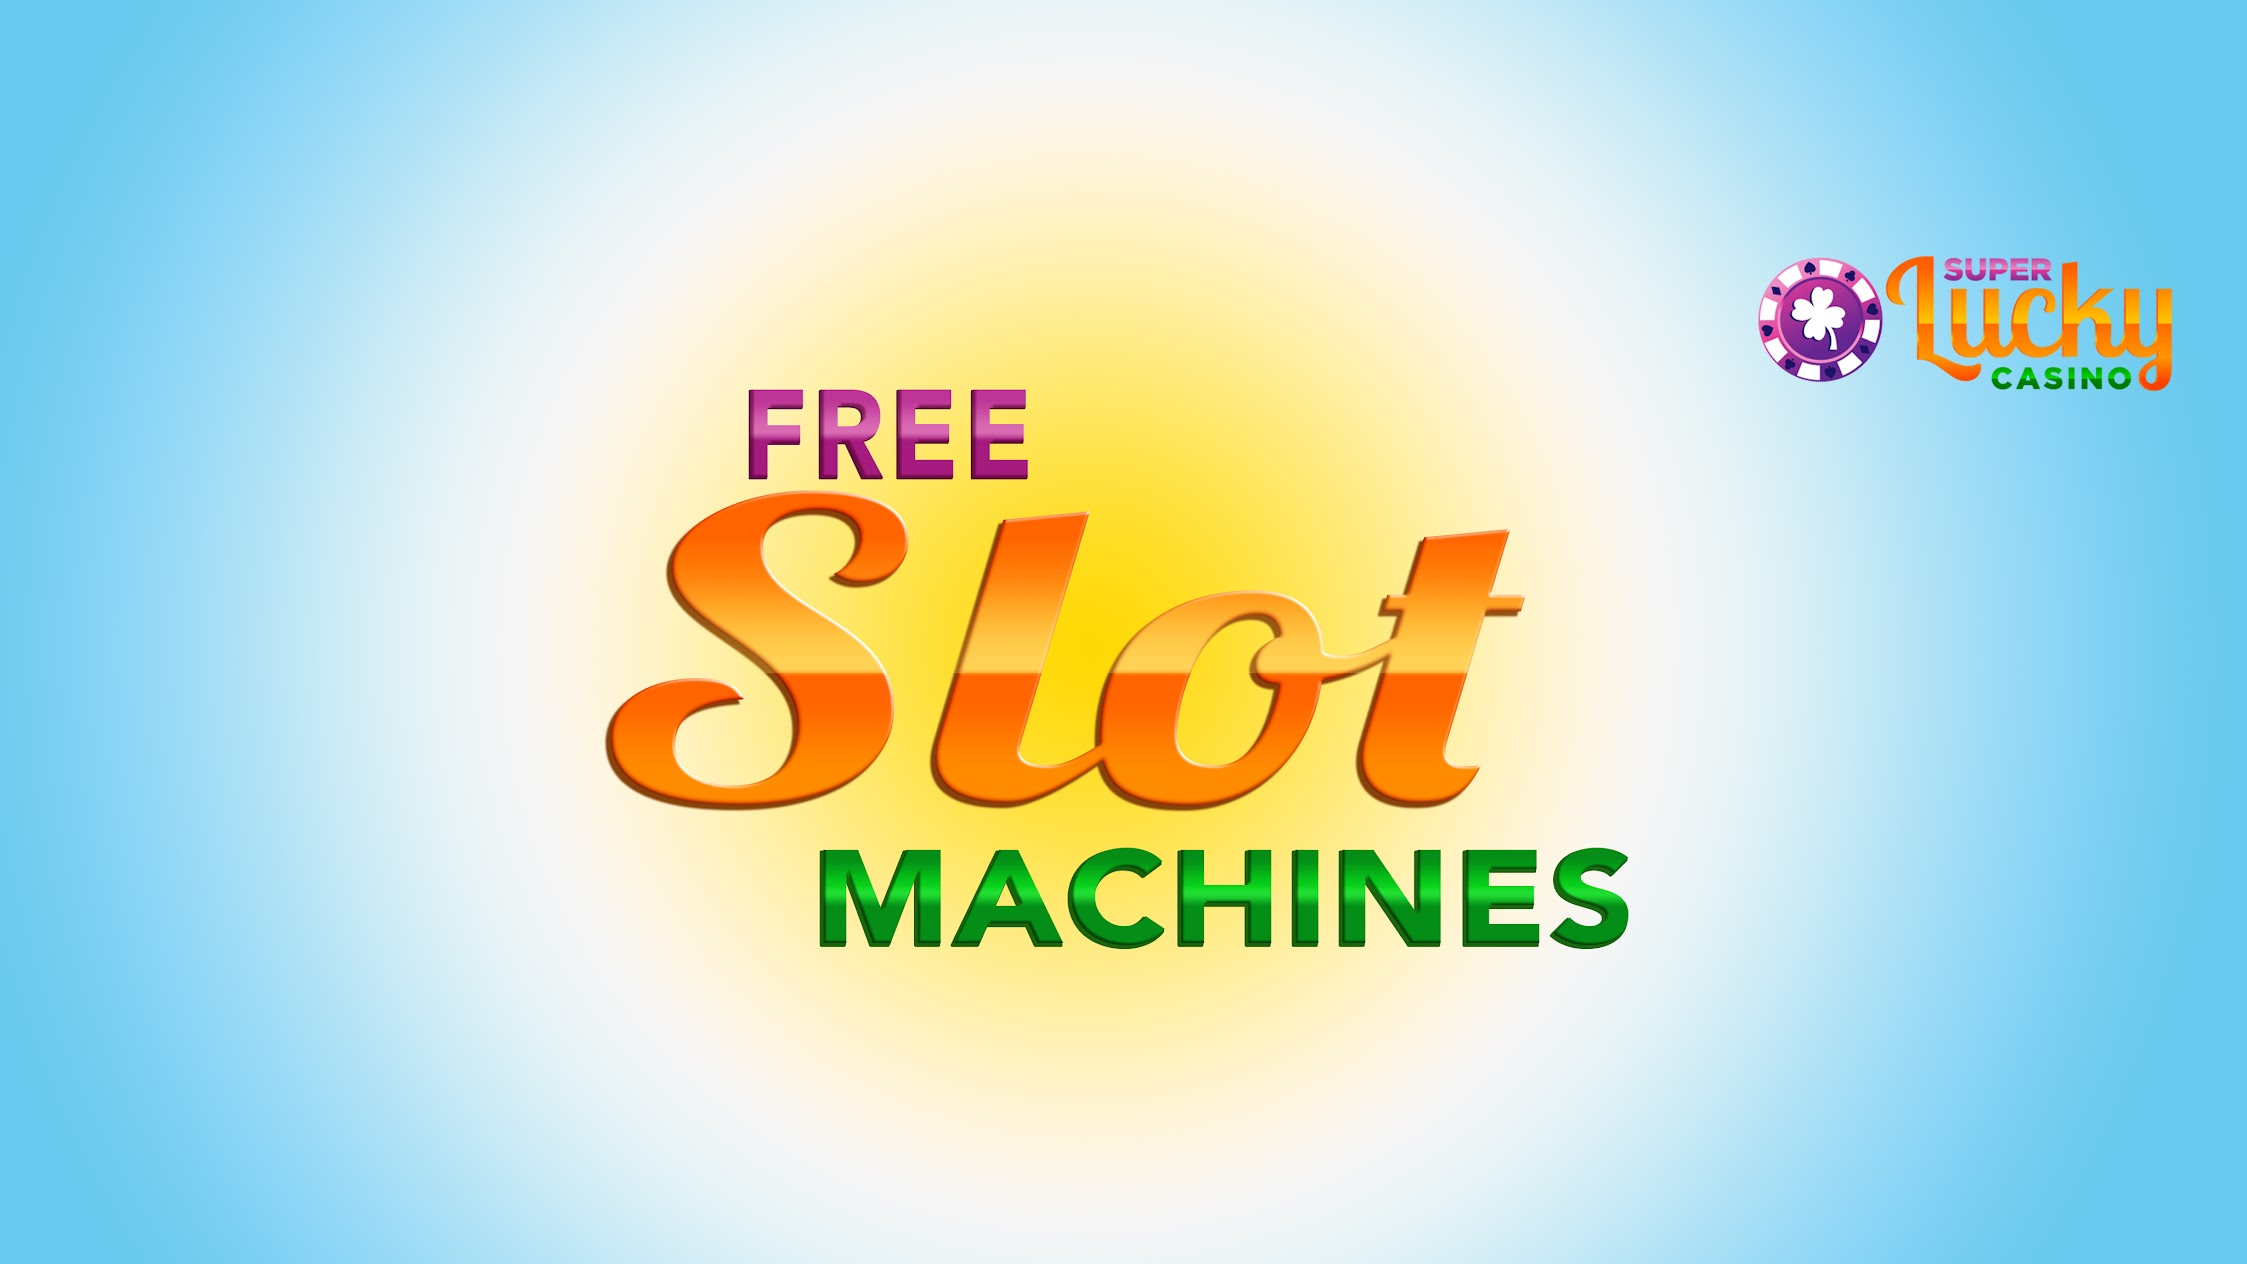 SLOTS! Free Slot Machines by Super Lucky Casino